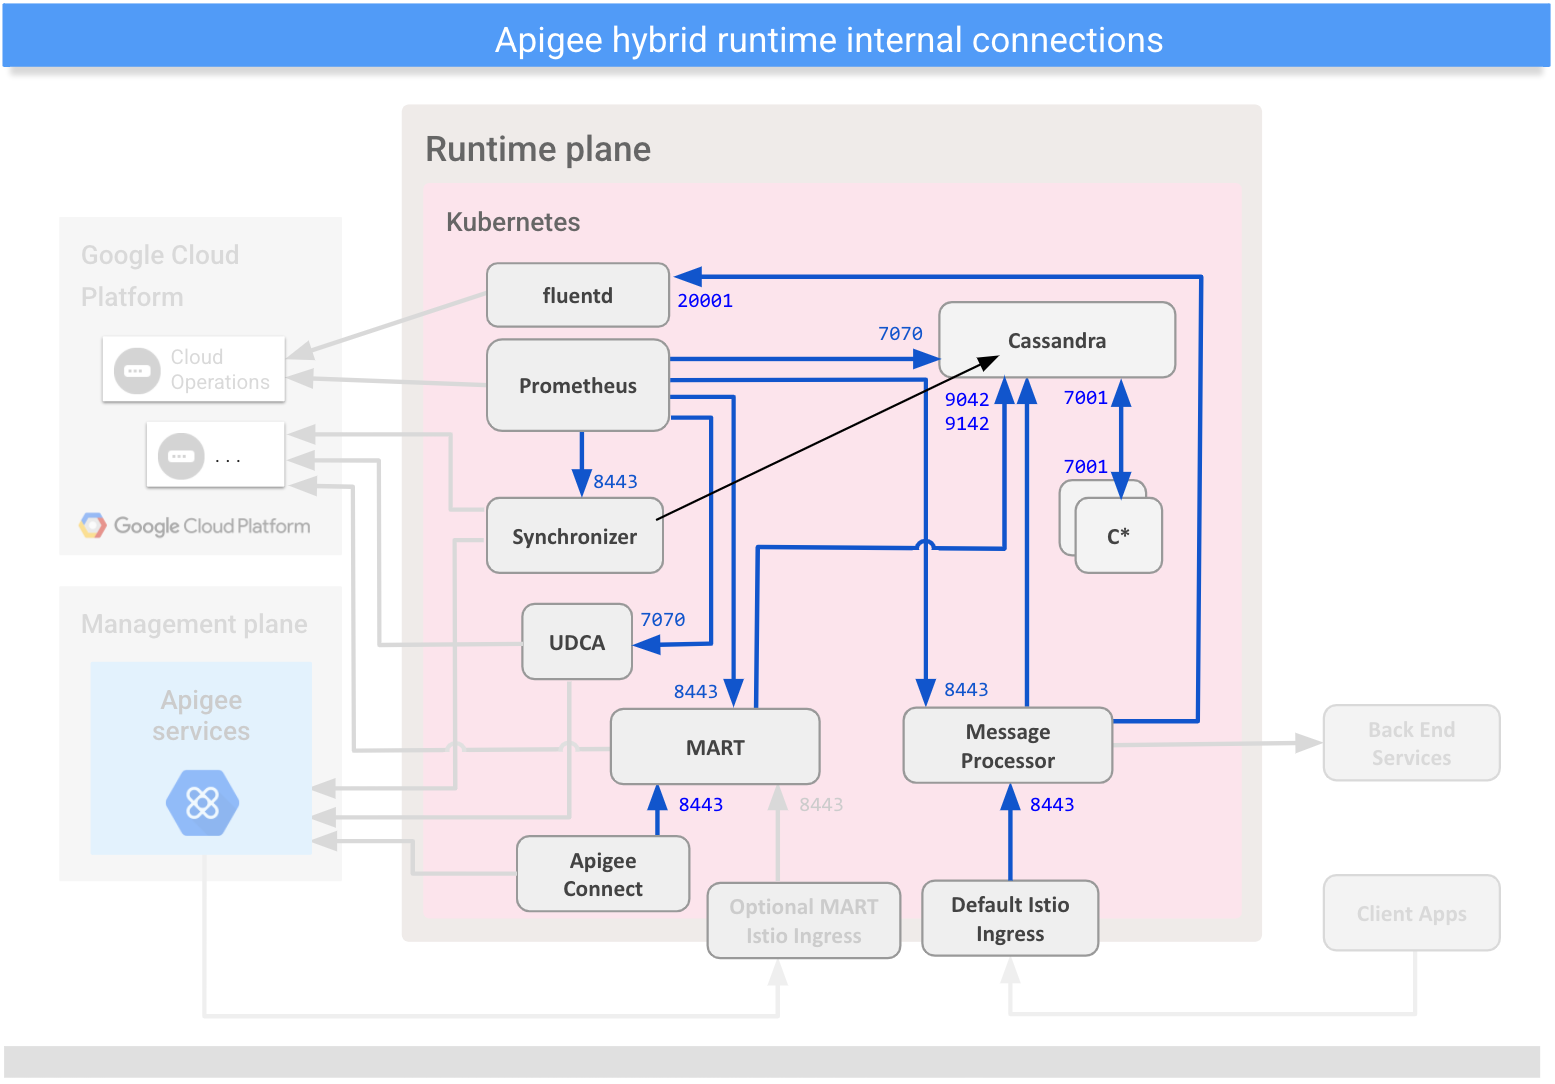 Shows connections between internal components on the hybrid runtime plane